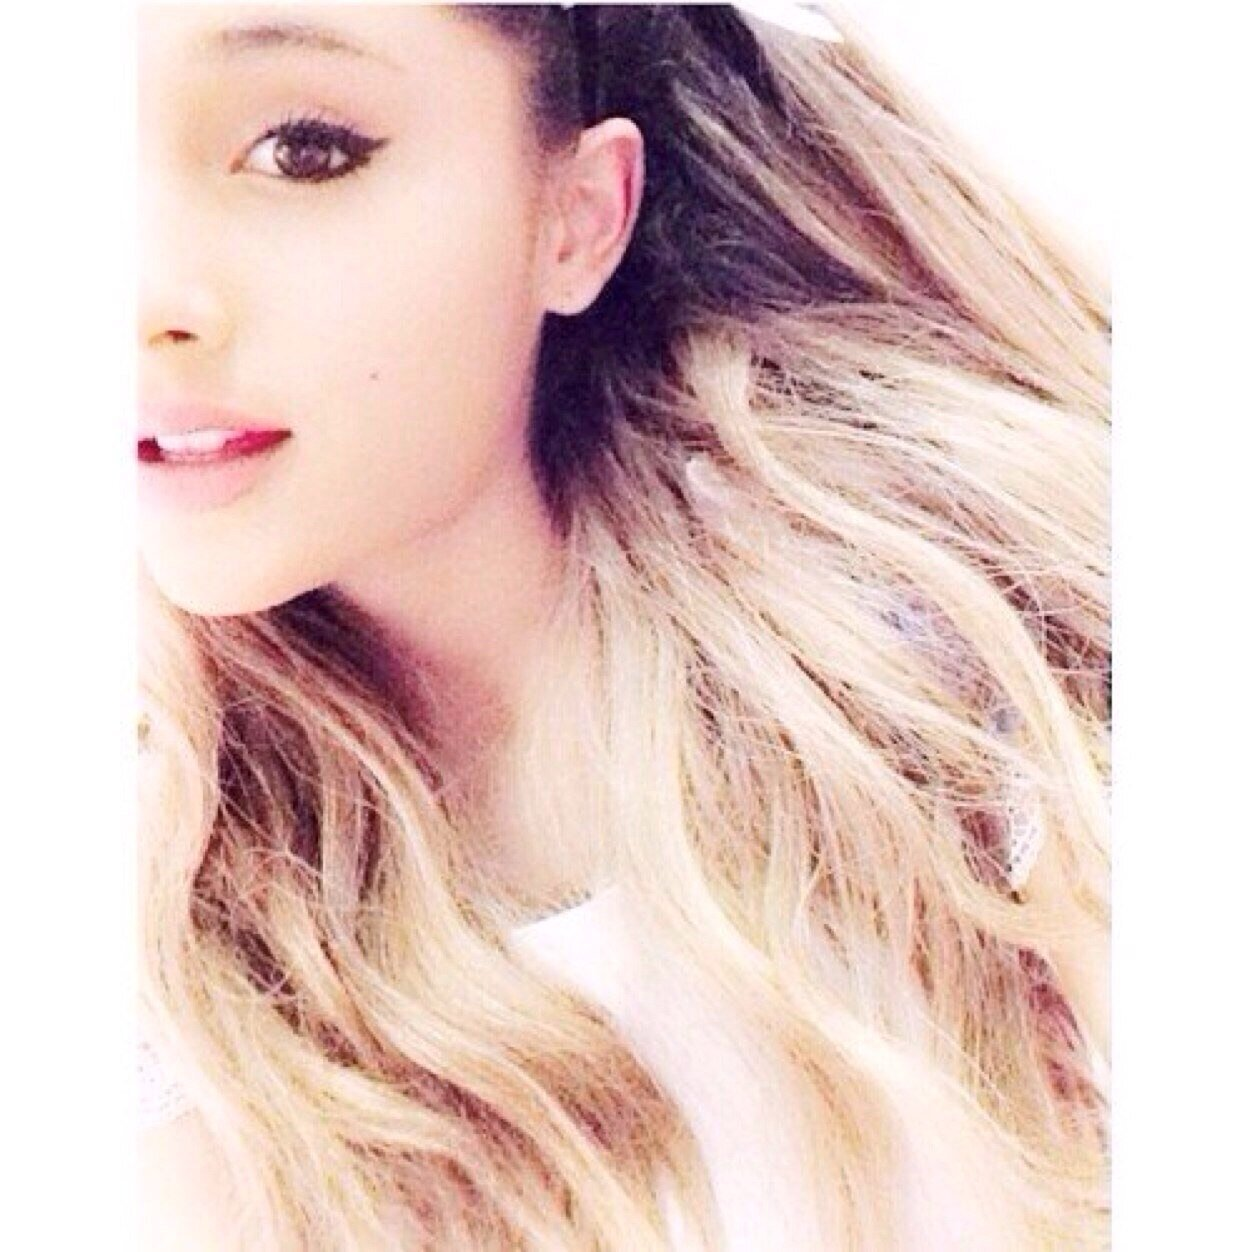 Ariana grande twitter shower mixtape download or stream it follow on twitter wyclef dj na added 04292013 by omizzle pop darling ariana grande was caught in a moment at voltagebd Gallery